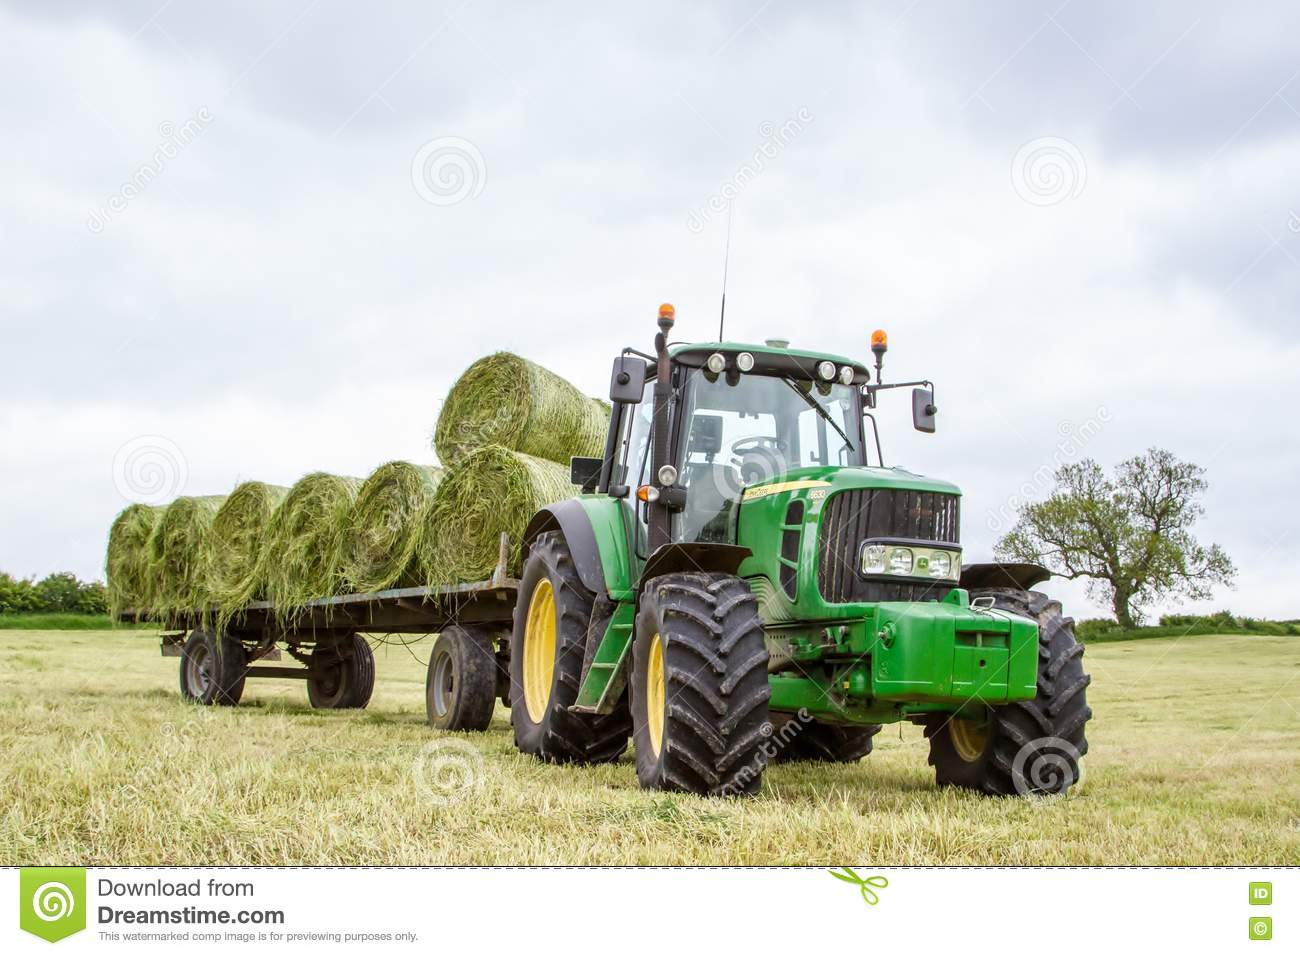 Up The Tractor Green Tractor With Bucket Cartoon : Hay bales on a trailer royalty free stock photography